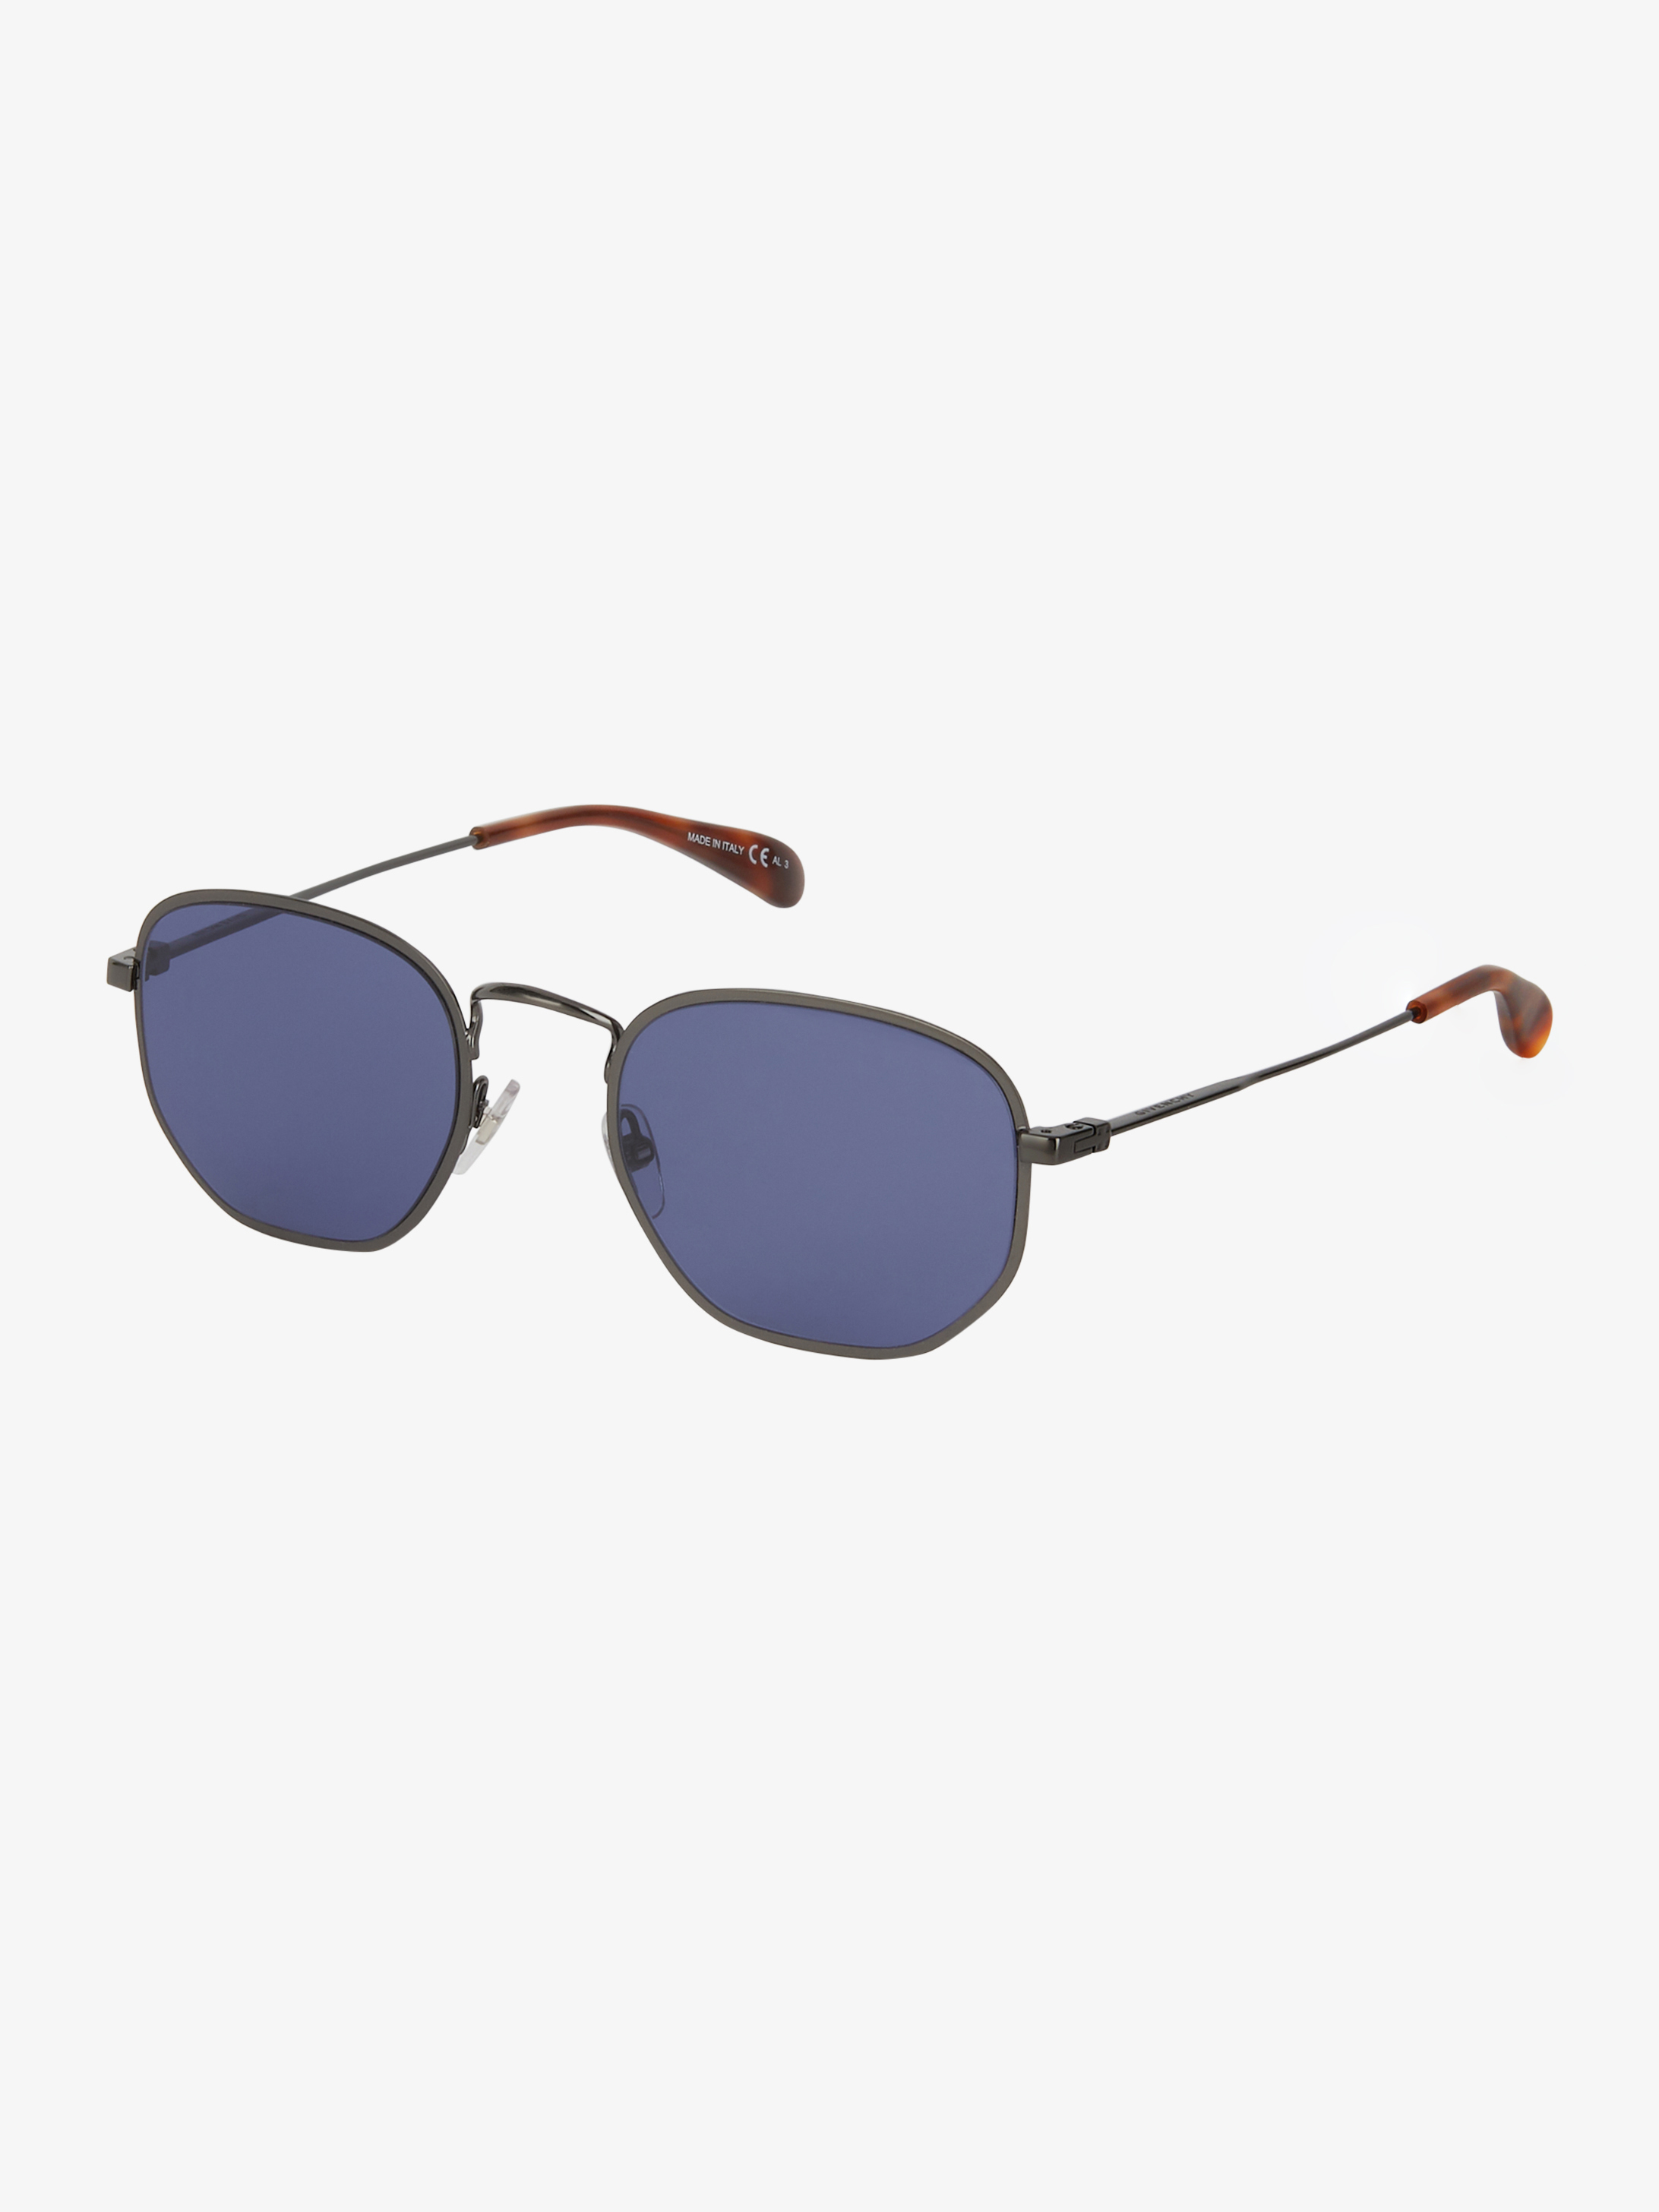 GV NAVIGATOR sunglasses in acetate and metal